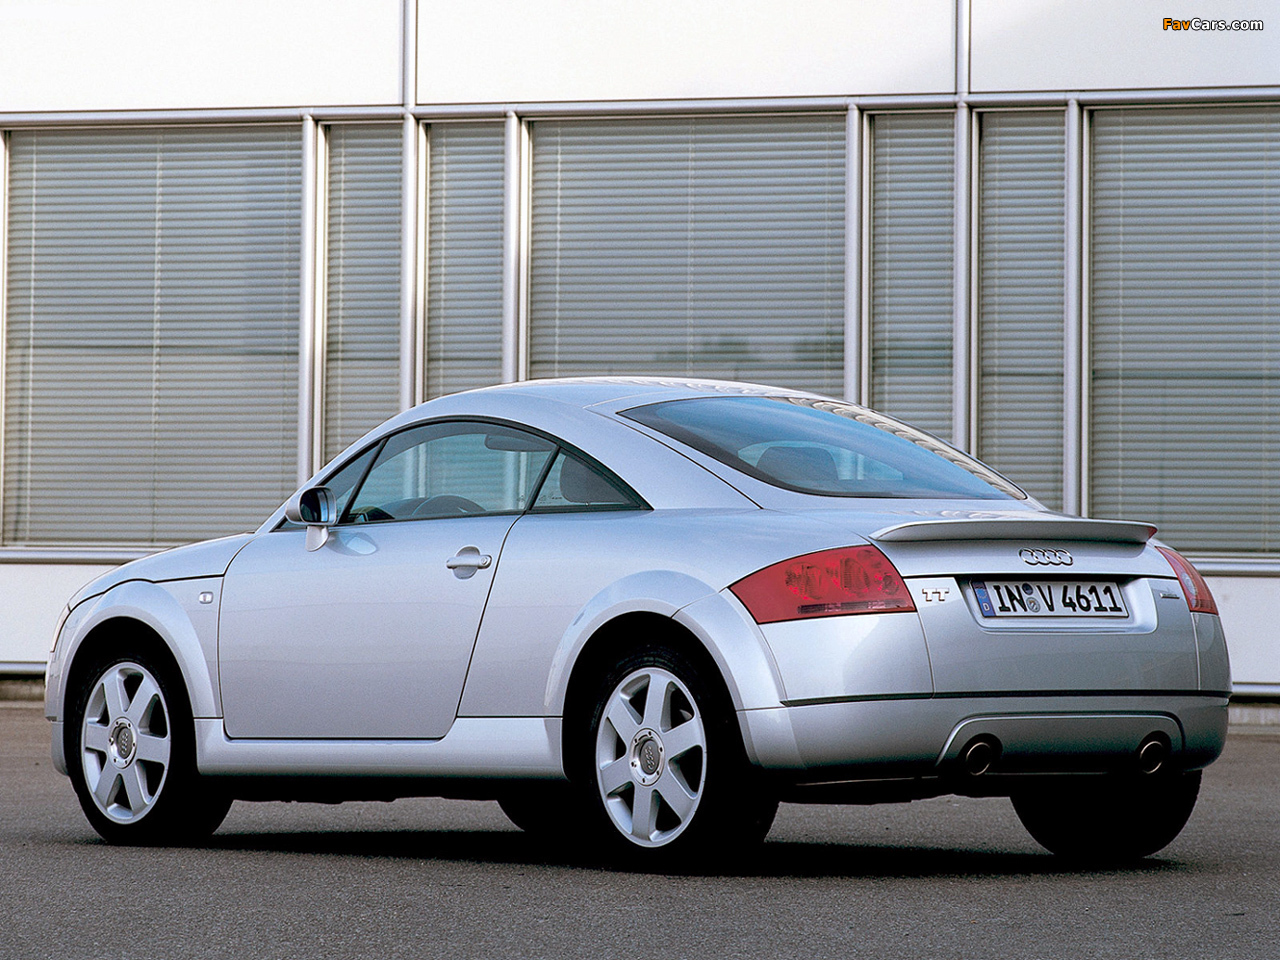 pictures of audi tt coupe 8n 1998 2003 1280x960. Black Bedroom Furniture Sets. Home Design Ideas